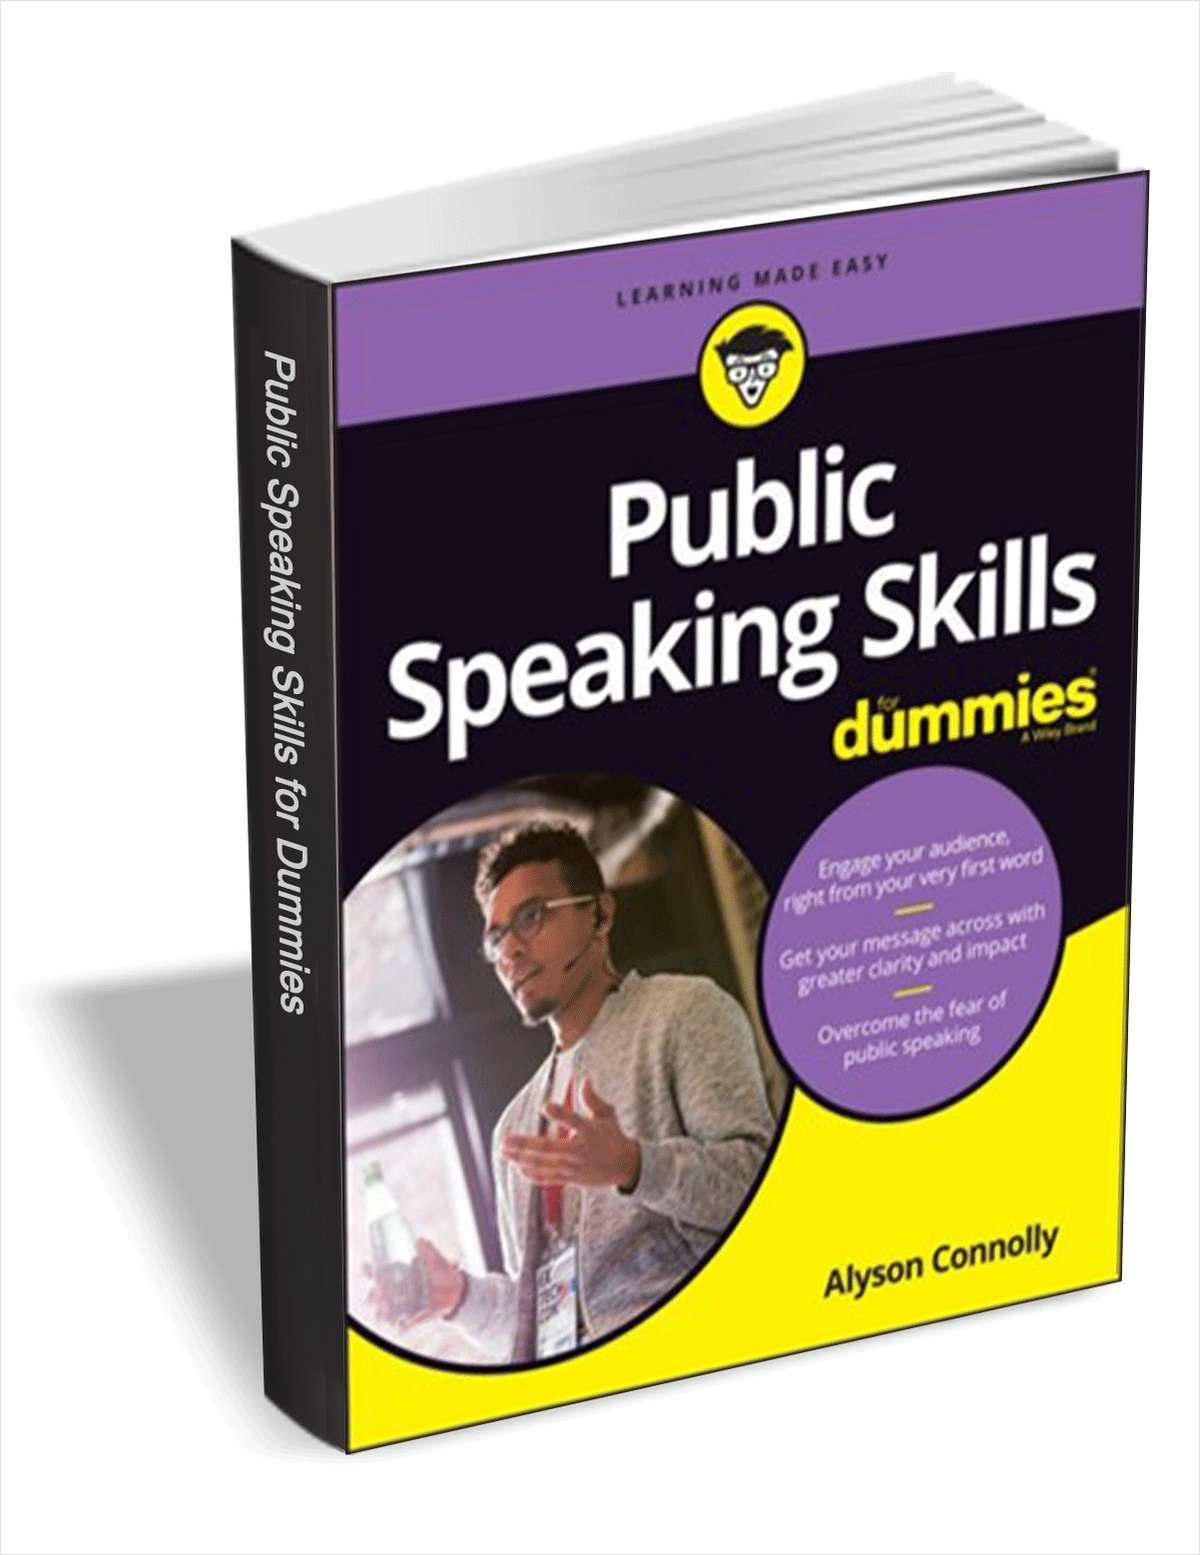 Public Speaking Skills For Dummies ($24.99 Value) FREE for a Limited Time Screenshot